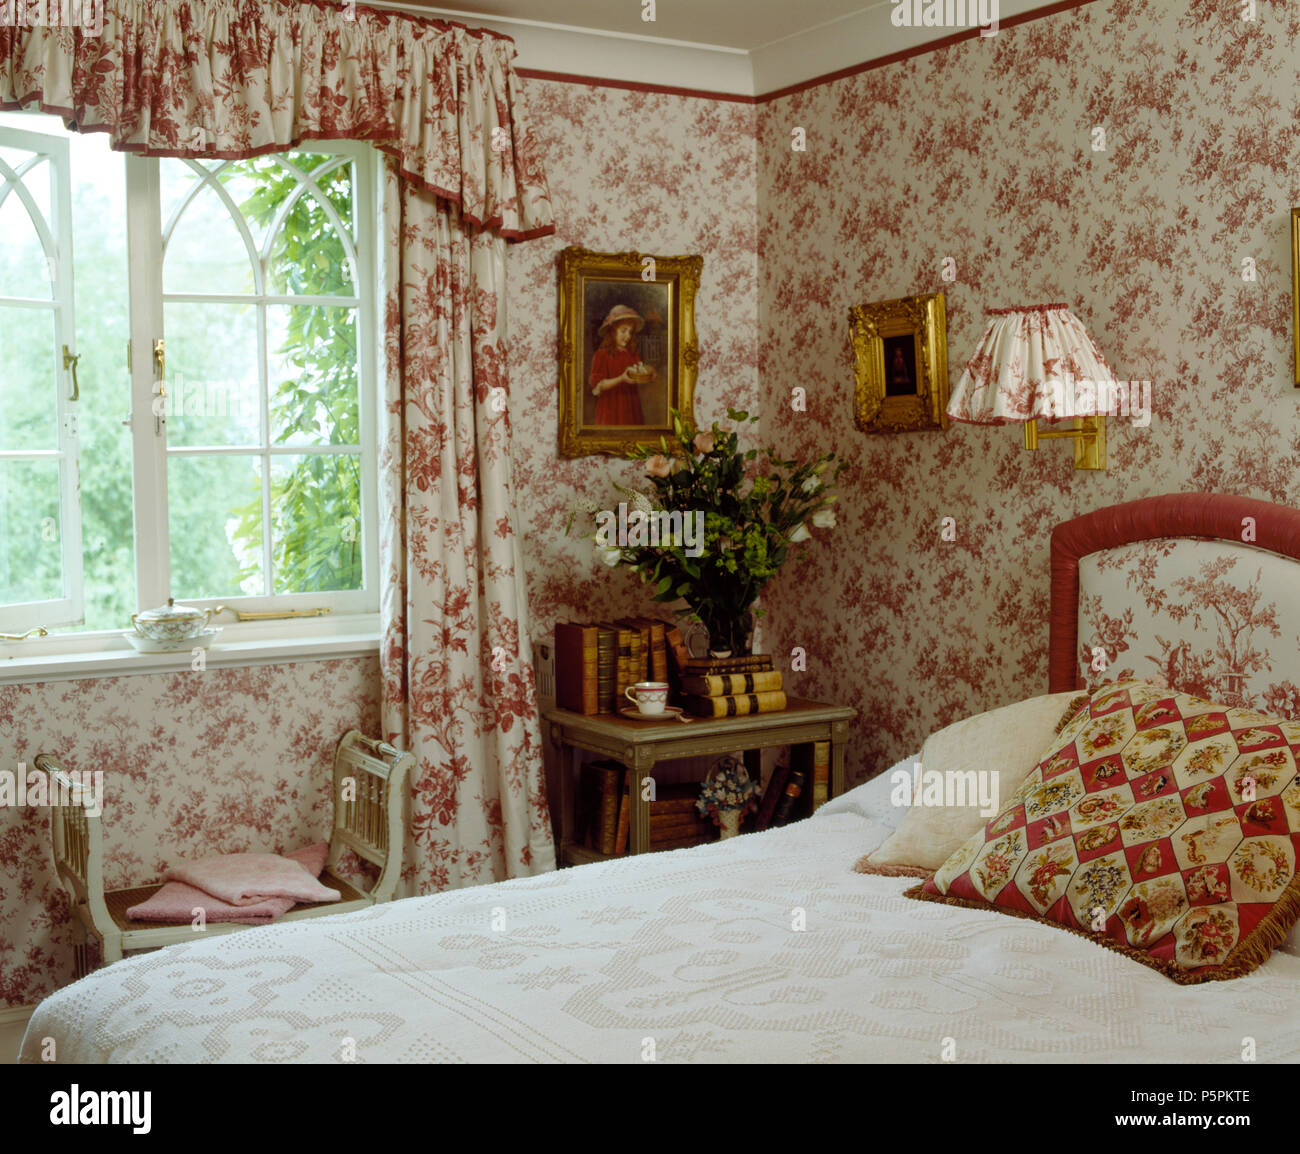 Co Ordinating Floral Wallpaper And Curtains In Country Bedroom